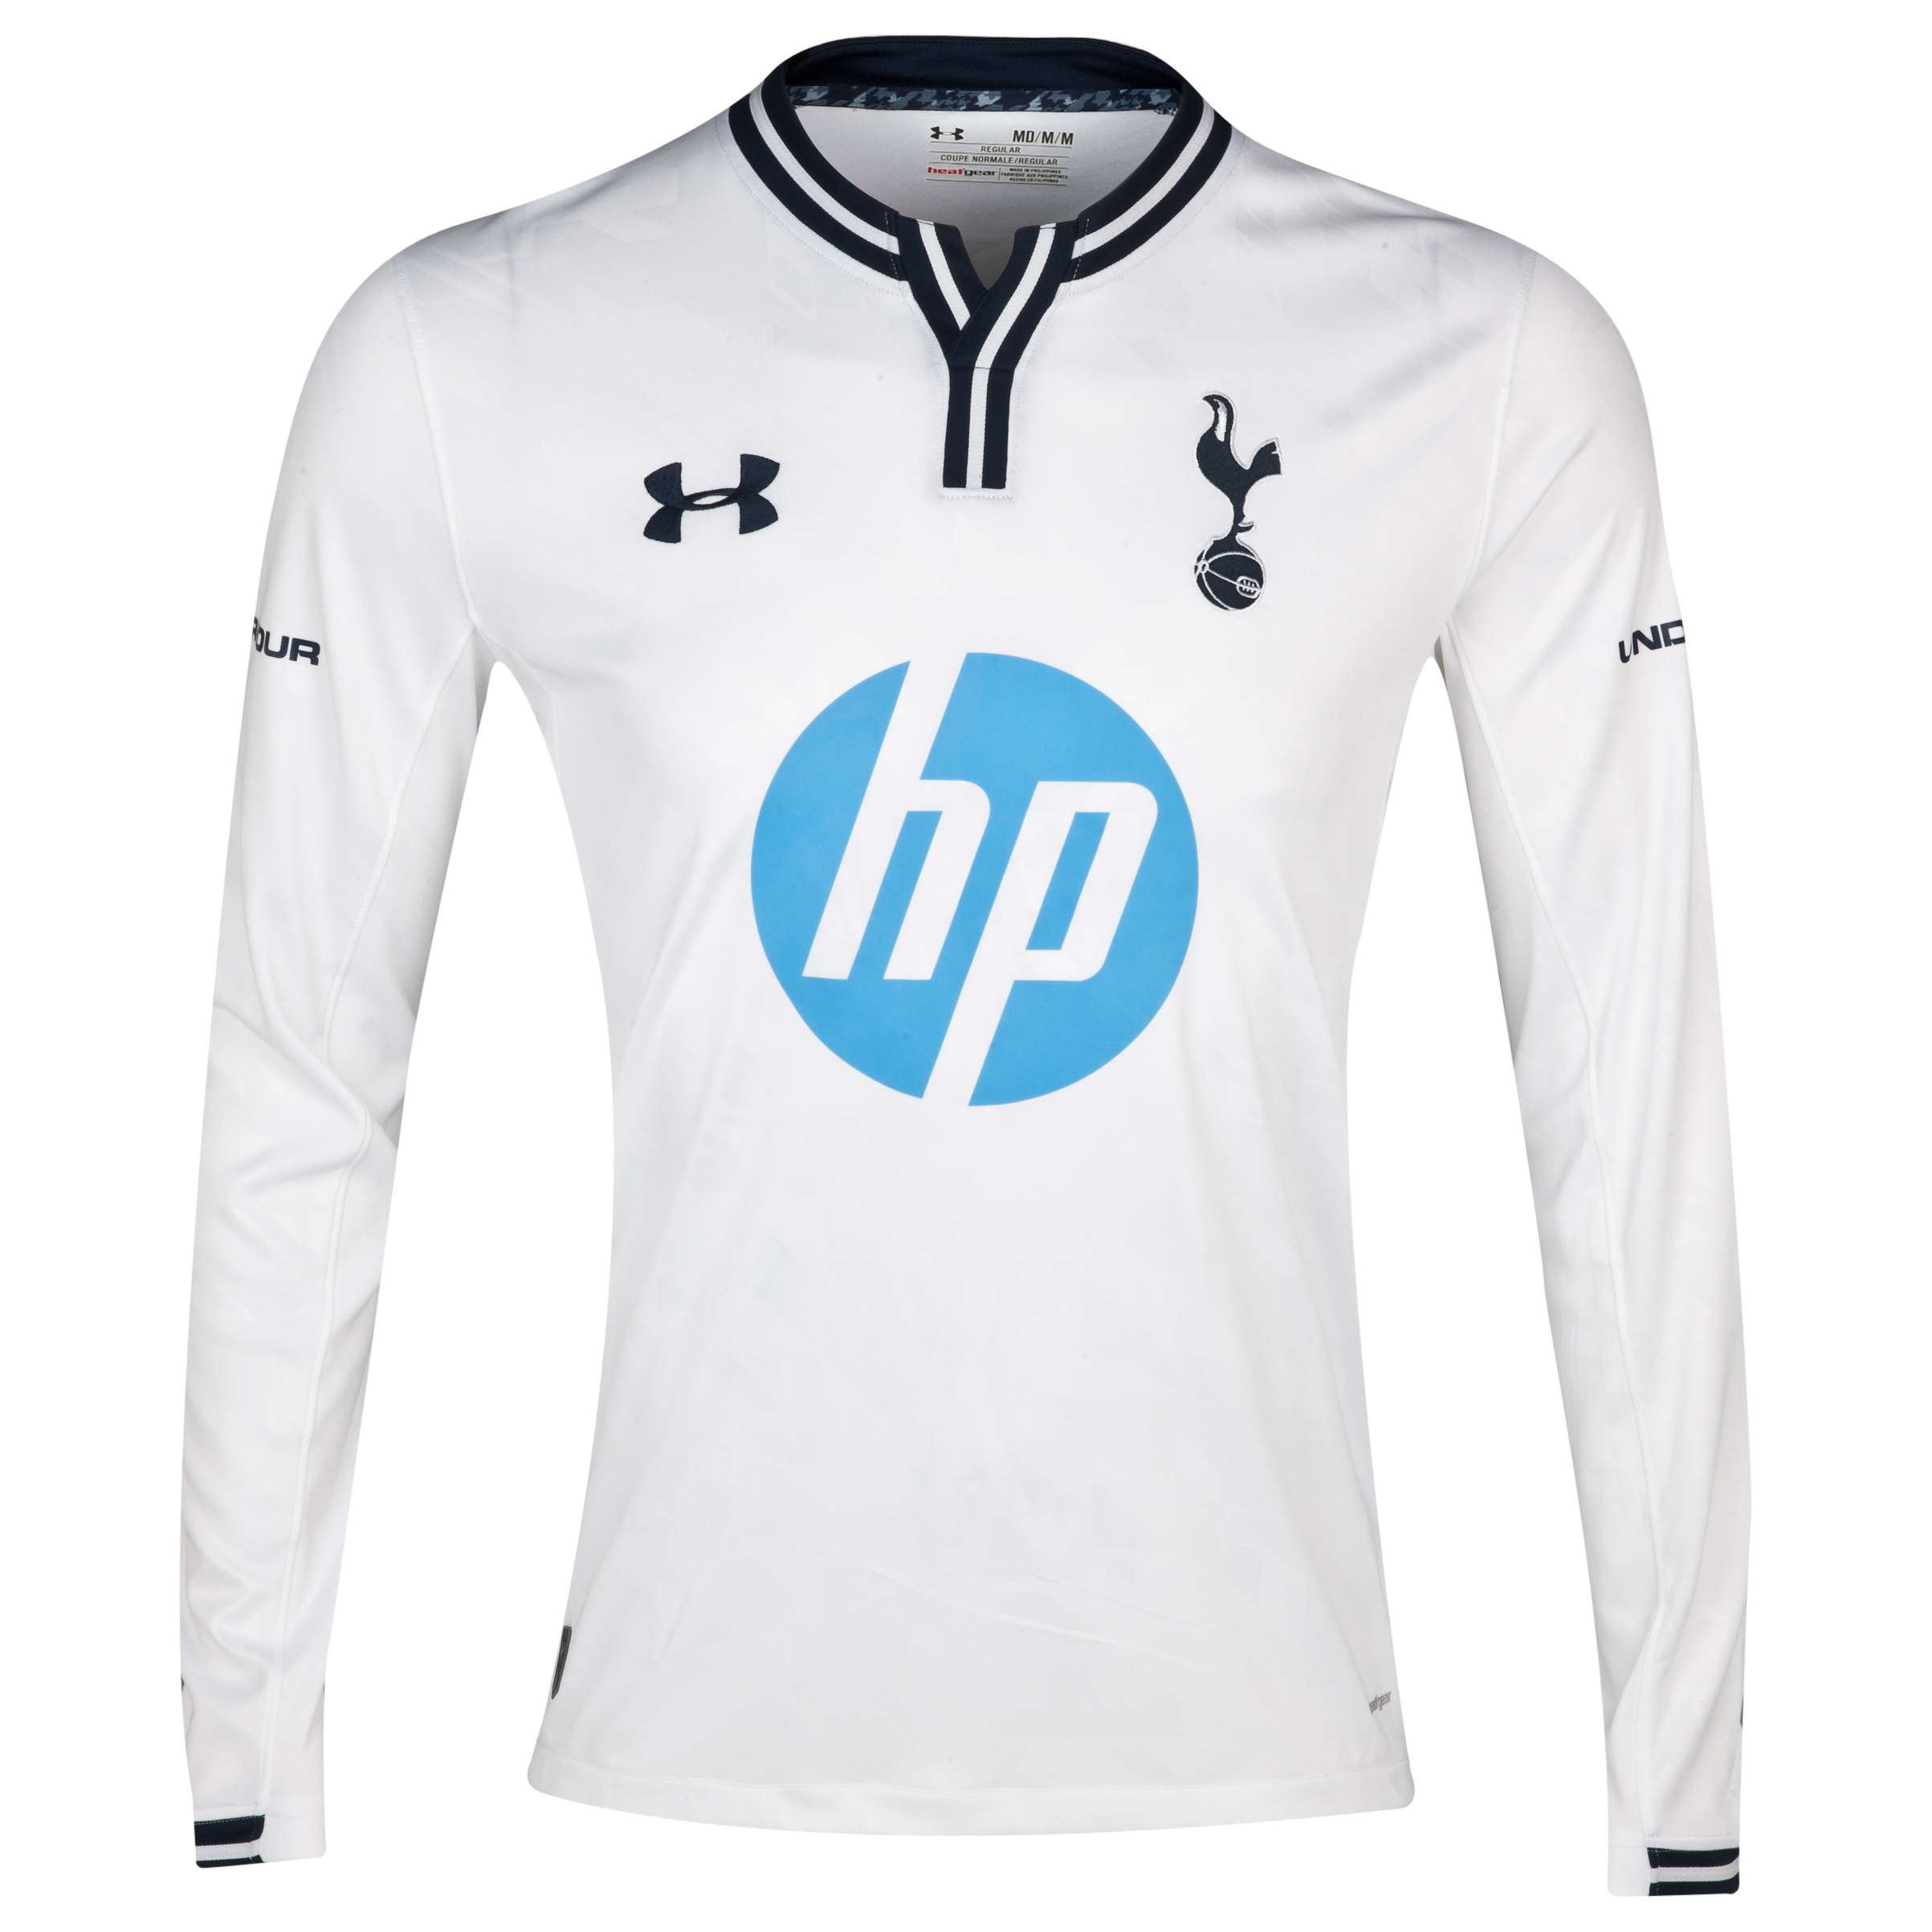 Tottenham Hotspur Home Shirt 2013/14 - Long Sleeve